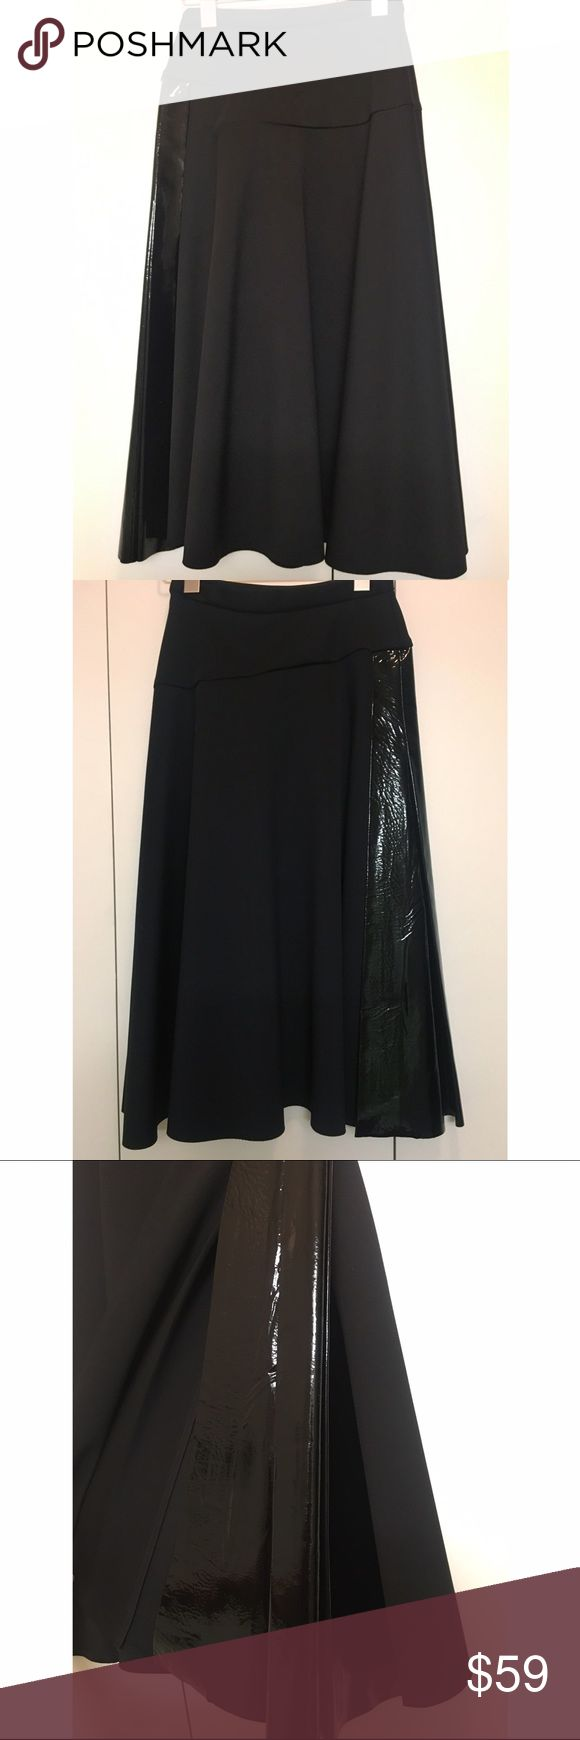 Topshop Unique black midi asymmetrical skirt Topshop Unique black midi asymmetrical skirt, size UK 6 (US2). Patent leather panel at side. In excellent condition. Made in UK. Topshop Skirts Midi